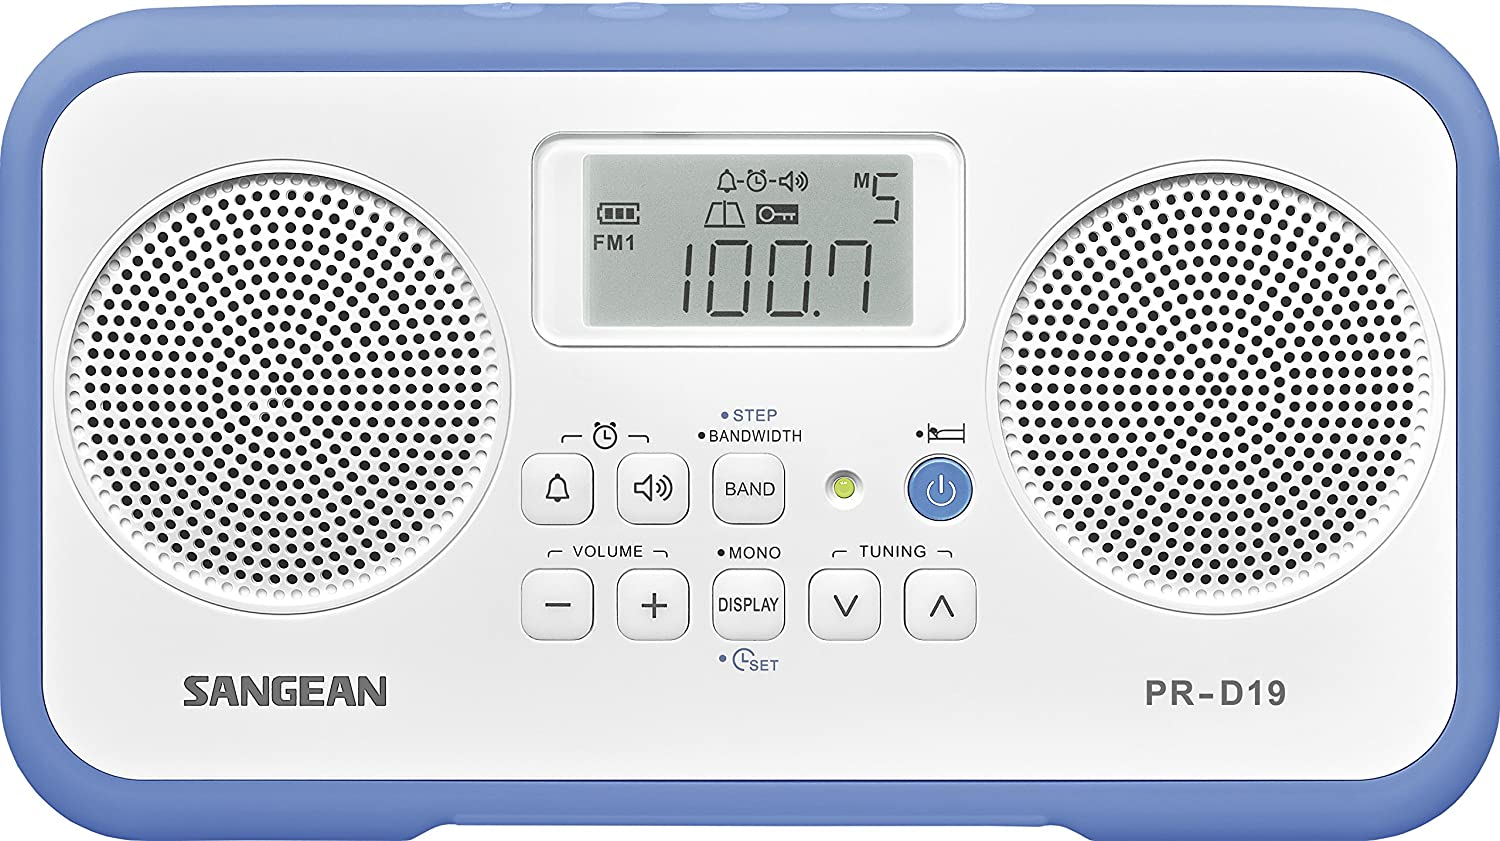 Sangean PR-D19BU FM Stereo/AM Digital Tuning Portable Radio with Protective Bumper, White/Blue